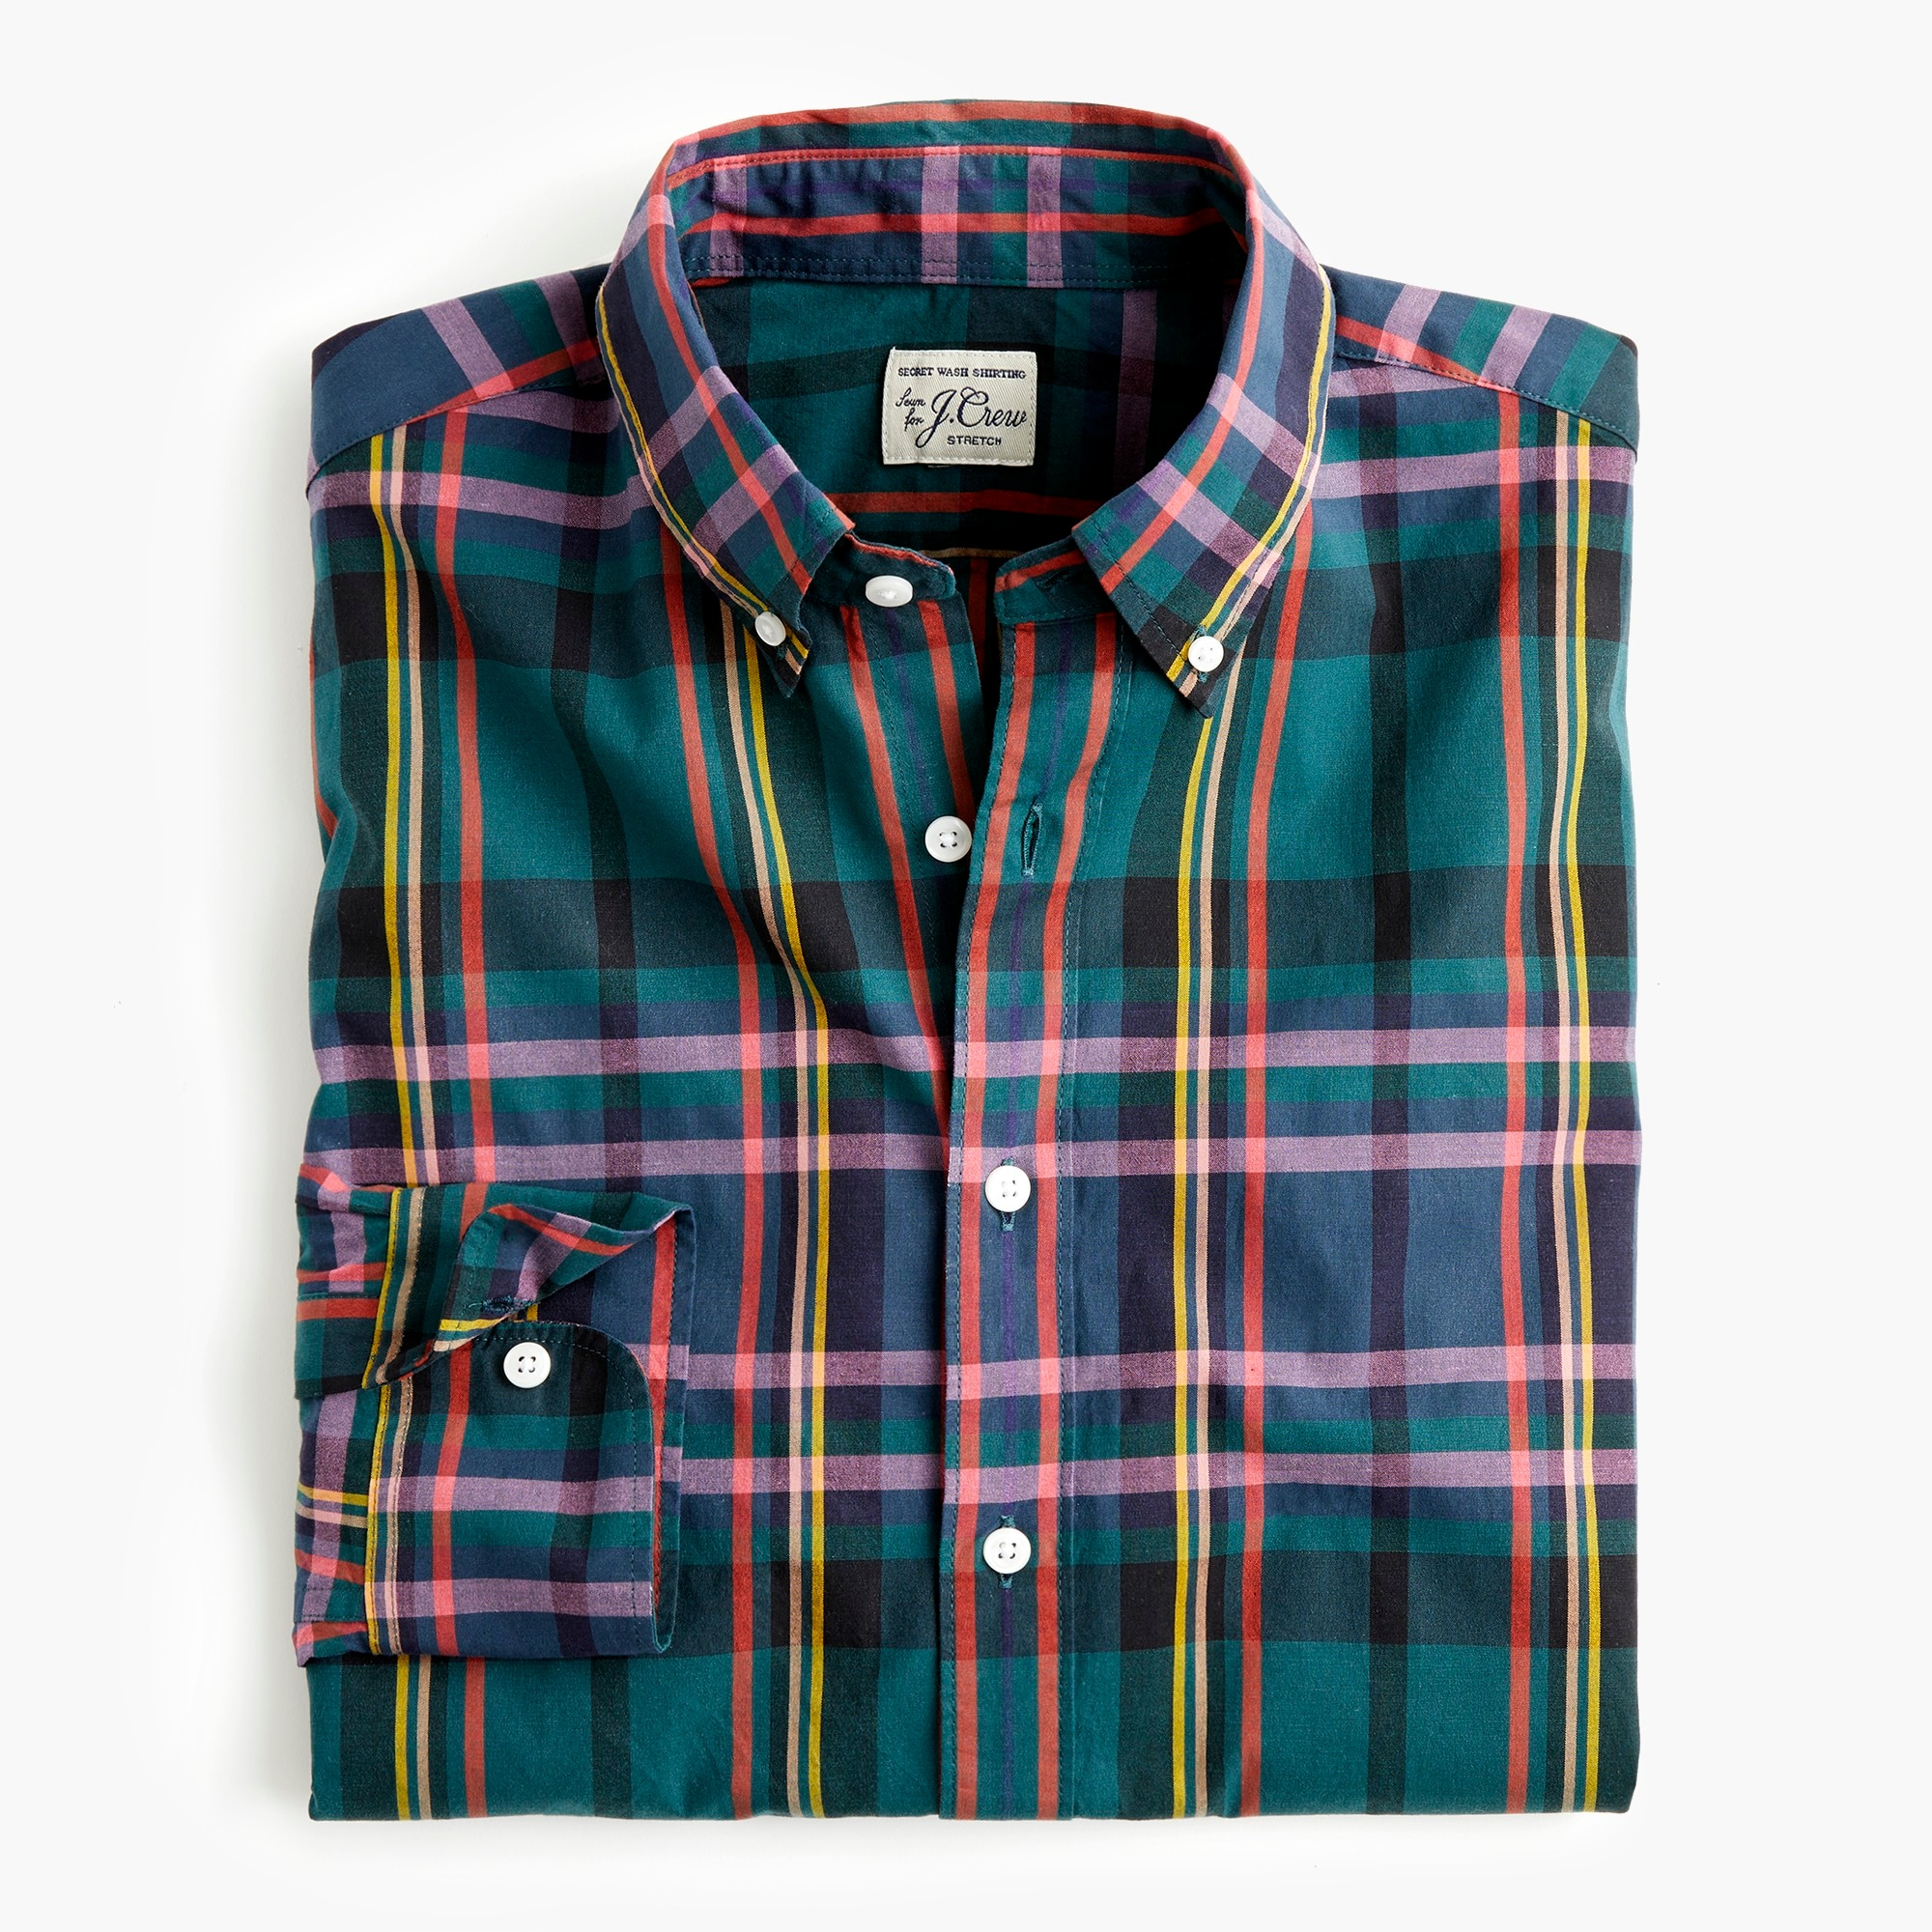 mens Slim stretch Secret Wash shirt in J.Crew Signature Tartan